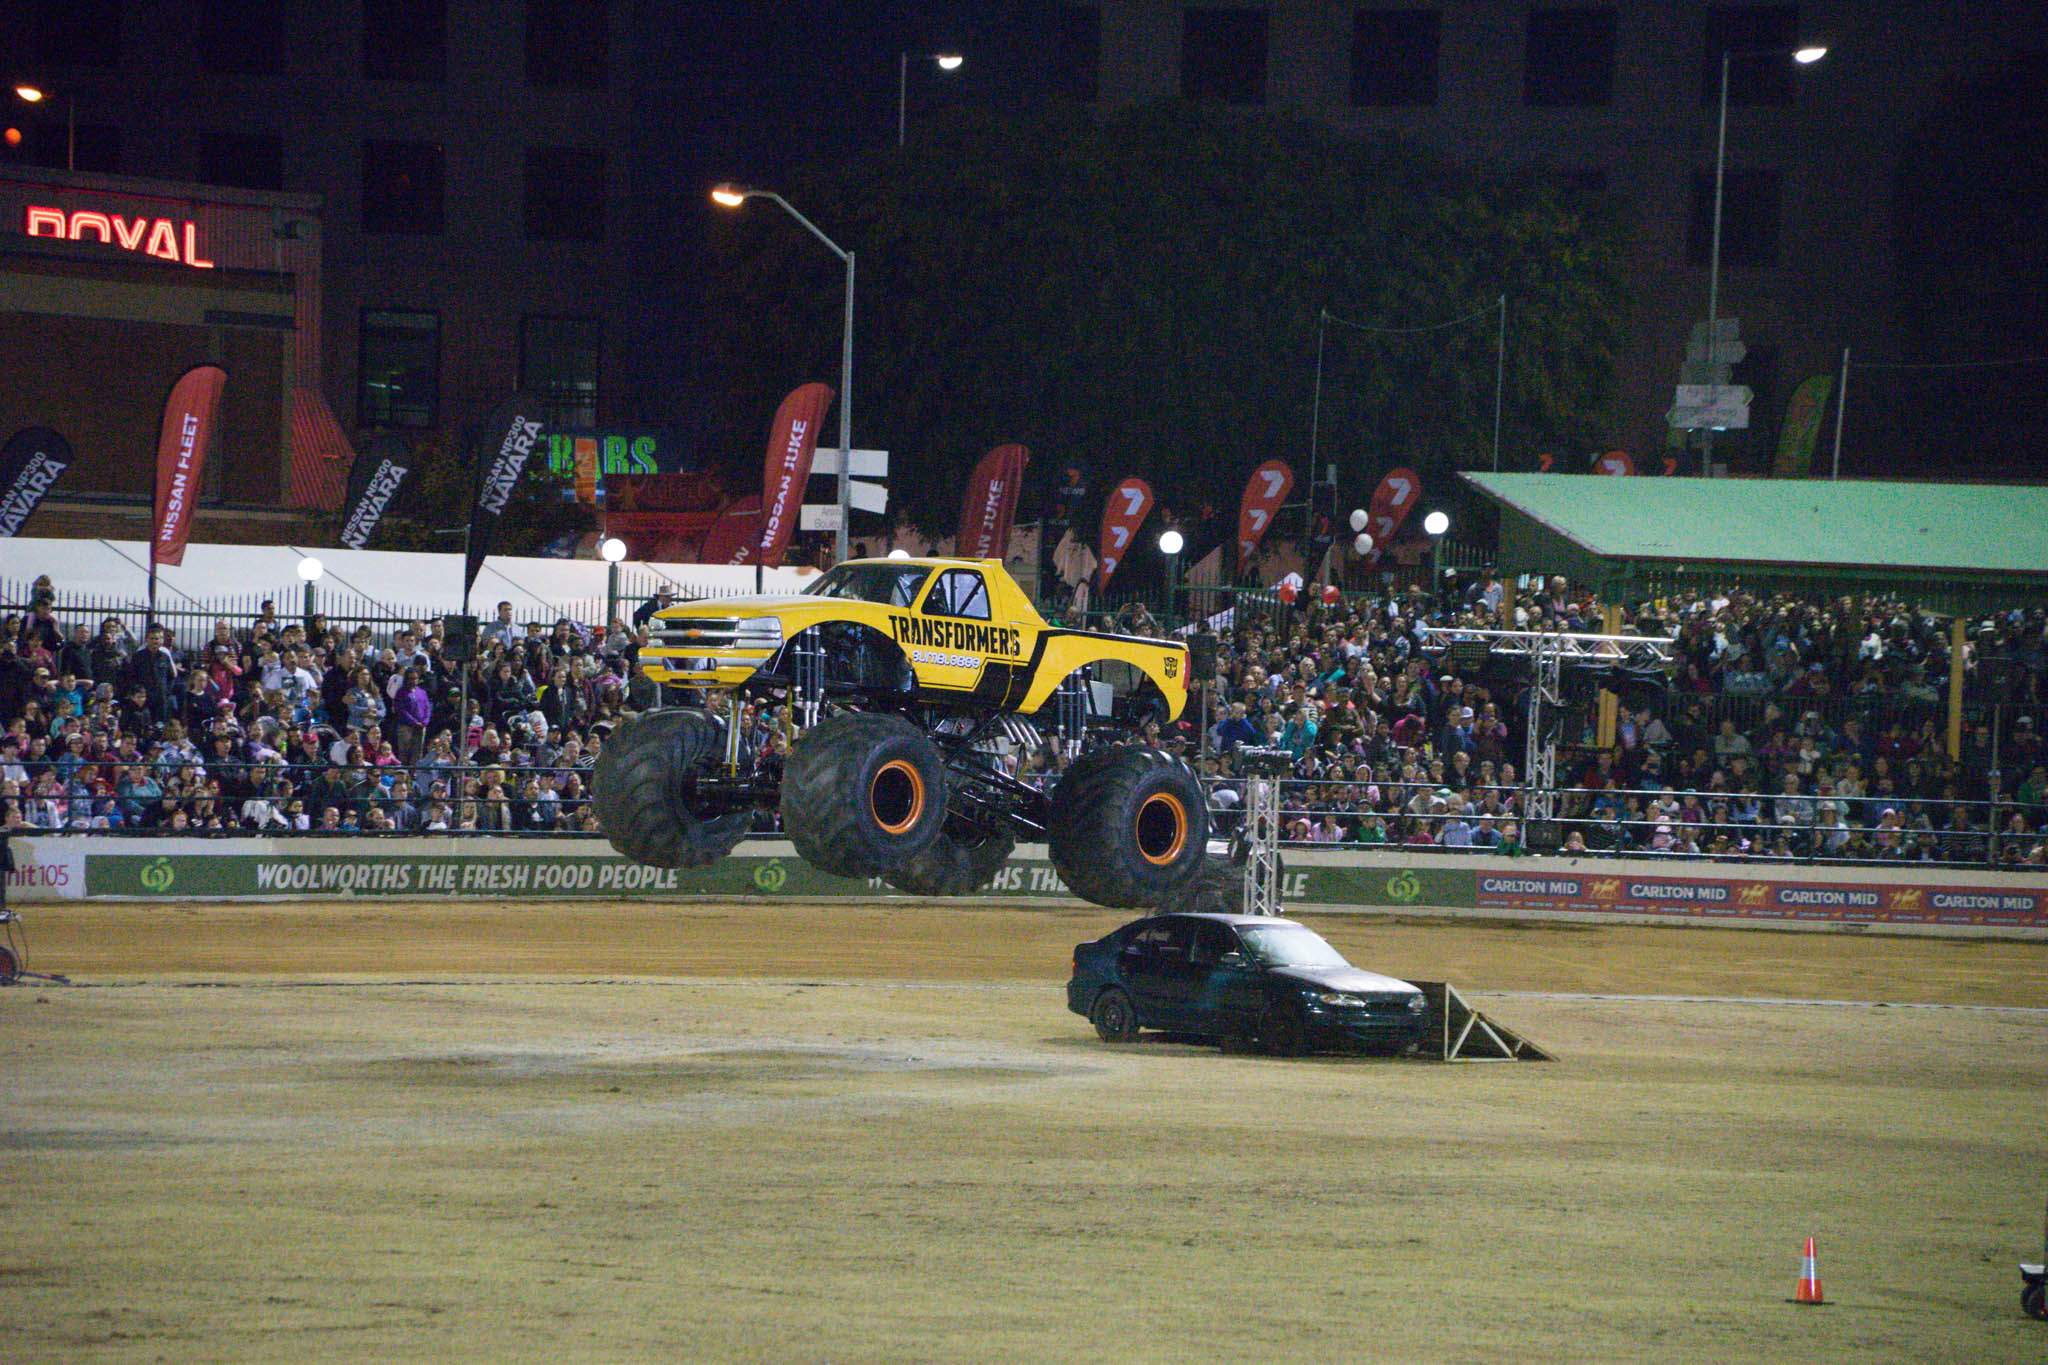 Saturday night fun at The Ekka. Monster trucks, motorcycles, and burn outs.